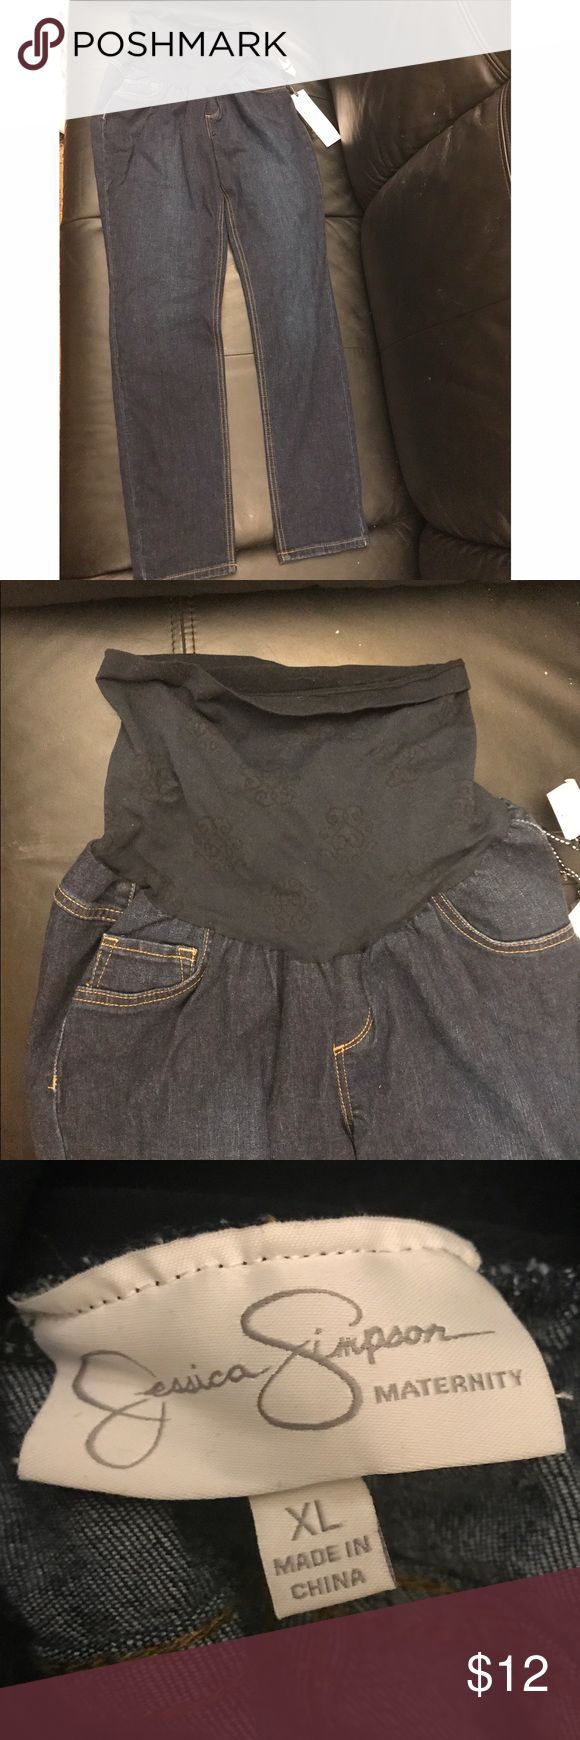 Jessica Simpson Full Panel Maternity Jeans - XL Brand new - Never worn (NWT) maternity jeans by Jessica Simpson.  The tag says XL but they fit like a 16.  That was my size in Old Navy jeans when I purchased them. These jeans feature a full panel so you can wear them your entire pregnancy.  Smoke and pet free home.  If you have any questions please feel free to ask. Offers welcome. Jessica Simpson Jeans Straight Leg